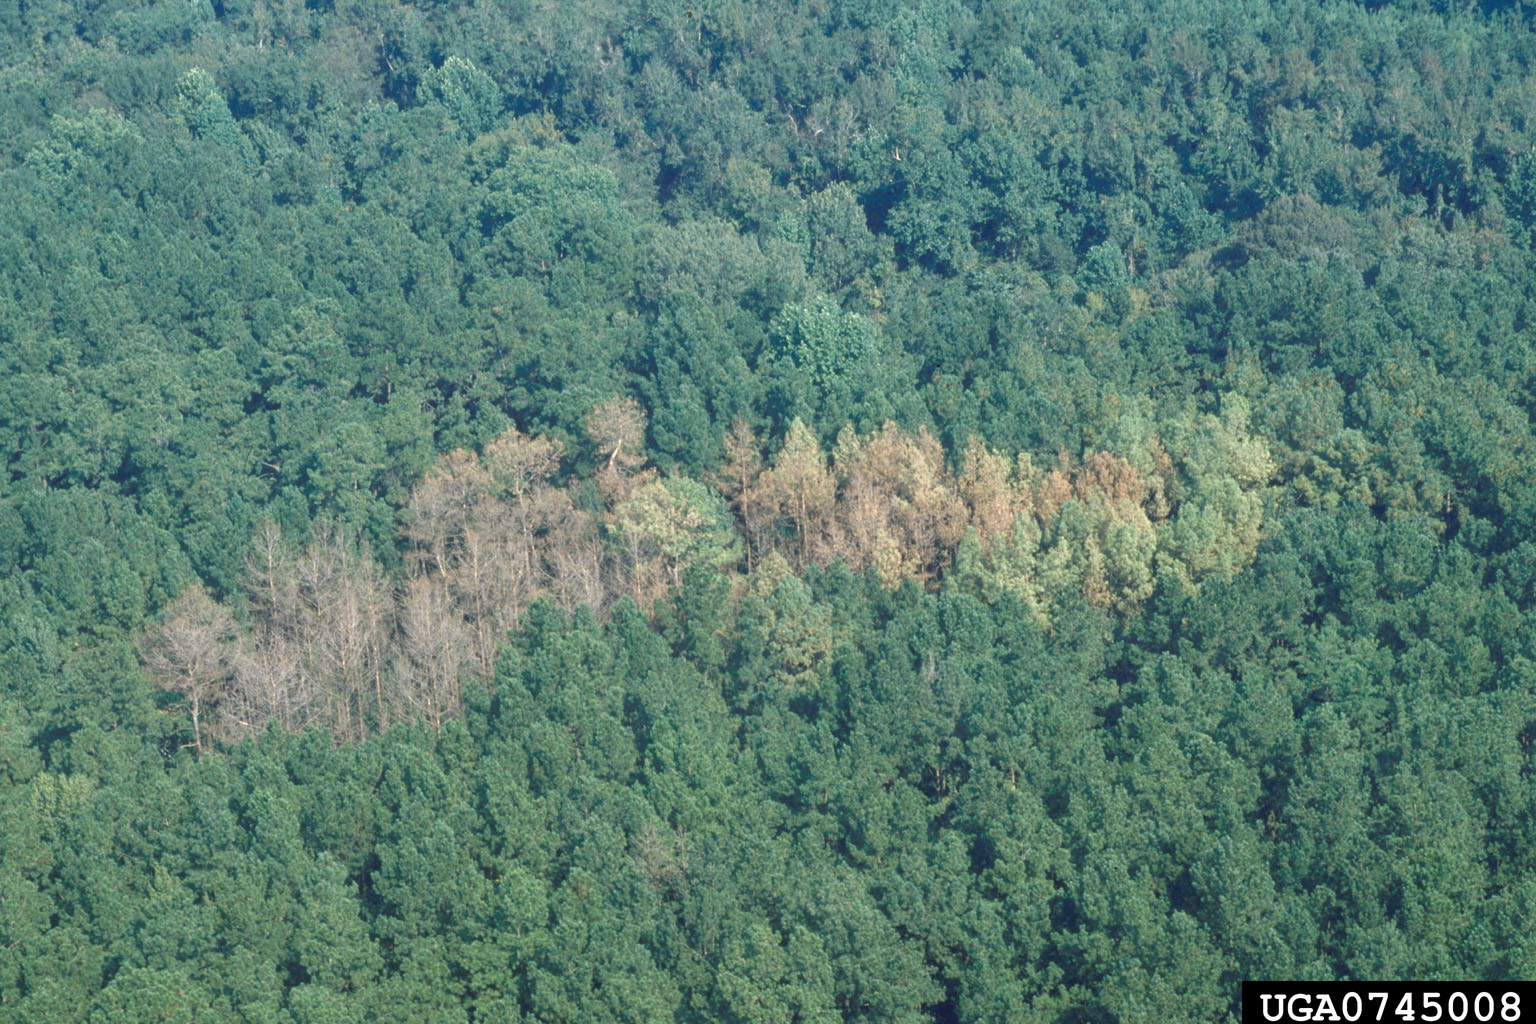 Southern Pine Beetle Usda if The Southern Pine Beetle is